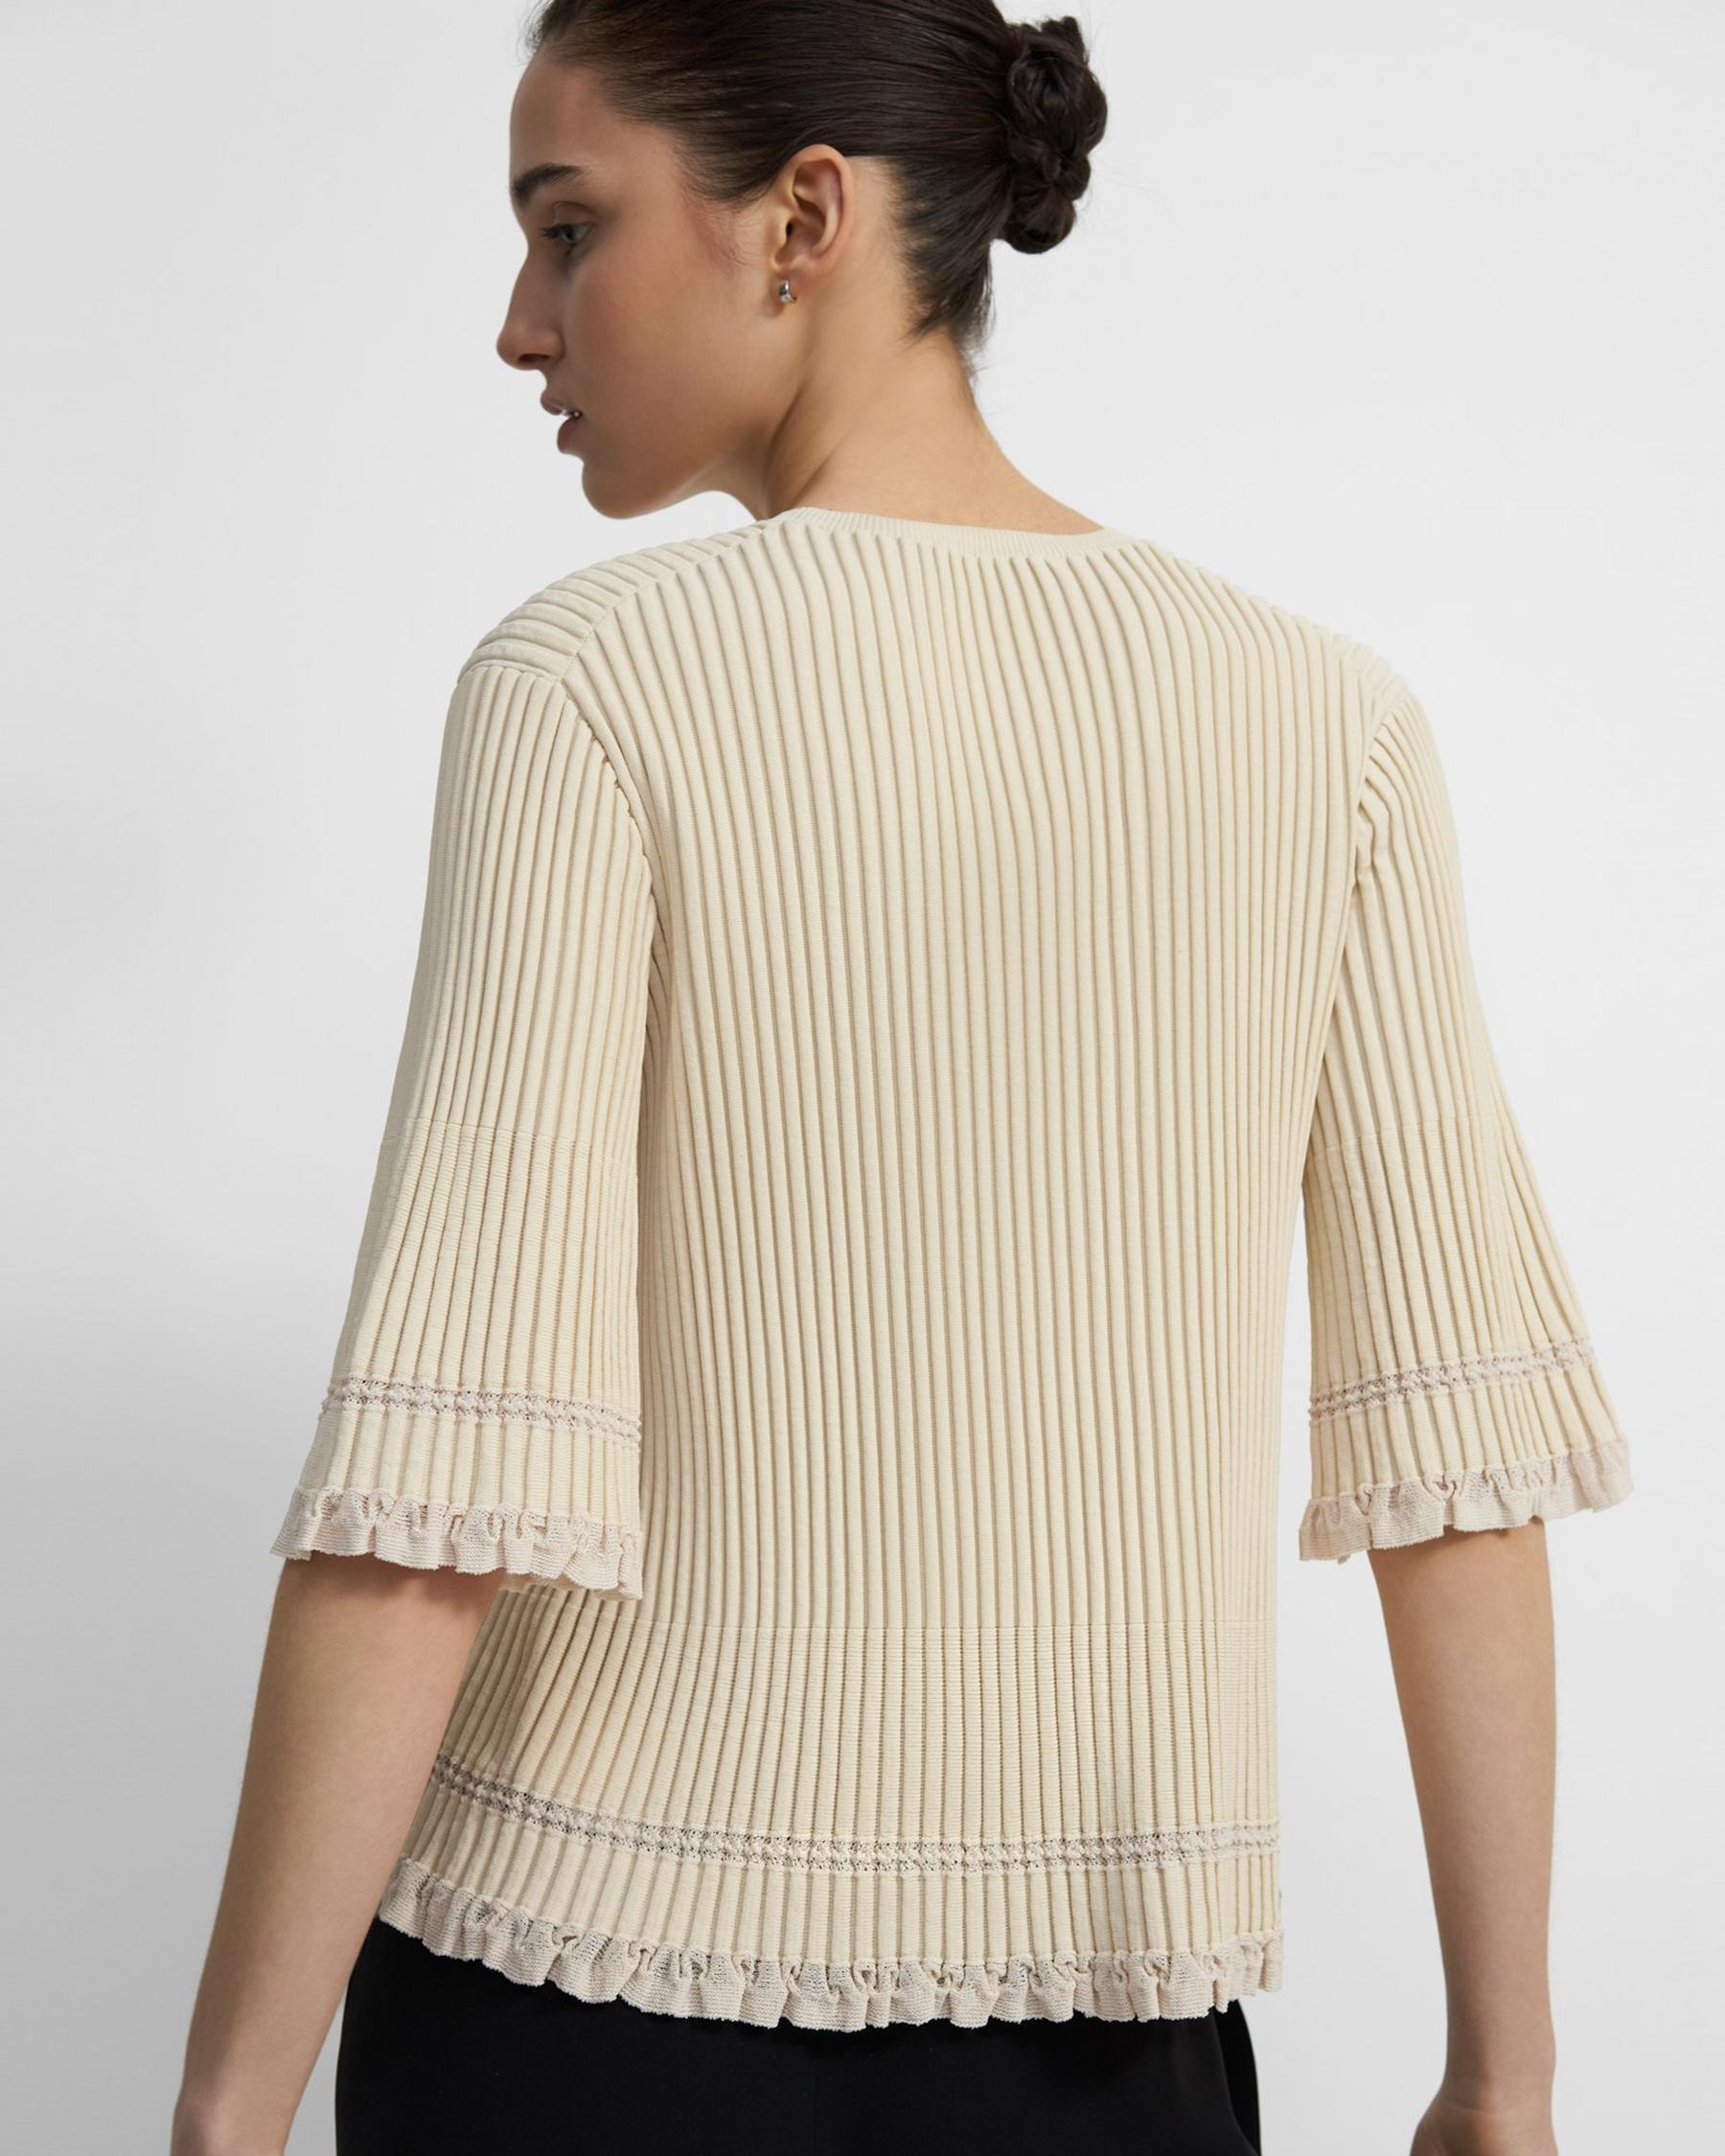 Ribbed T-Shirt in Eco Knit 2